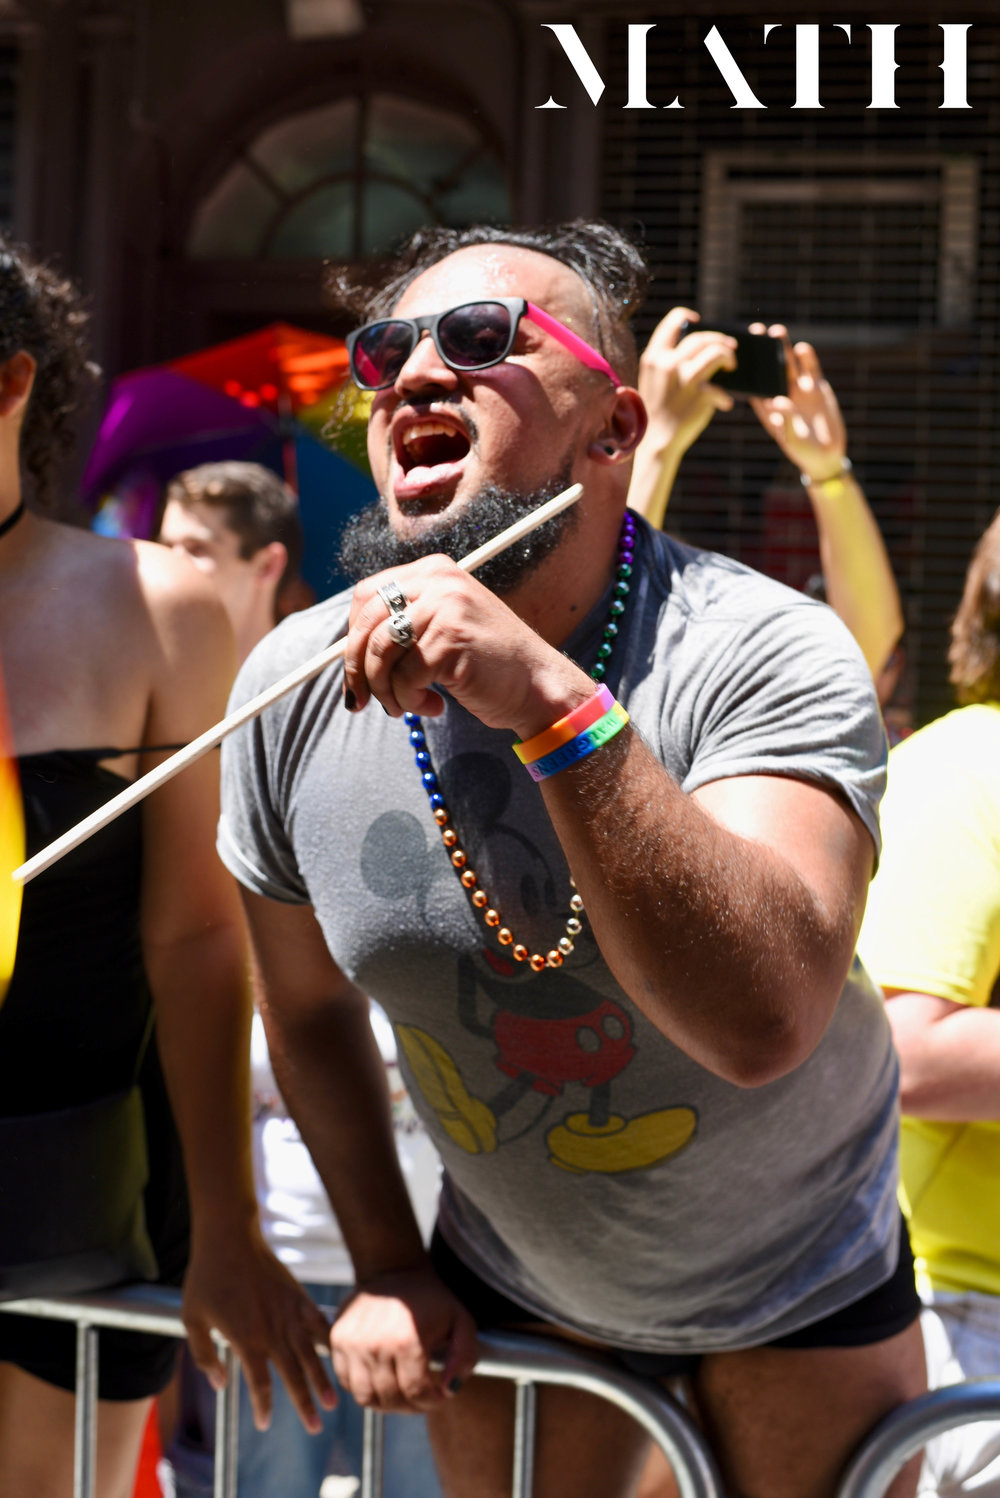 NYC Pride_Ginger Hollander 10.jpg